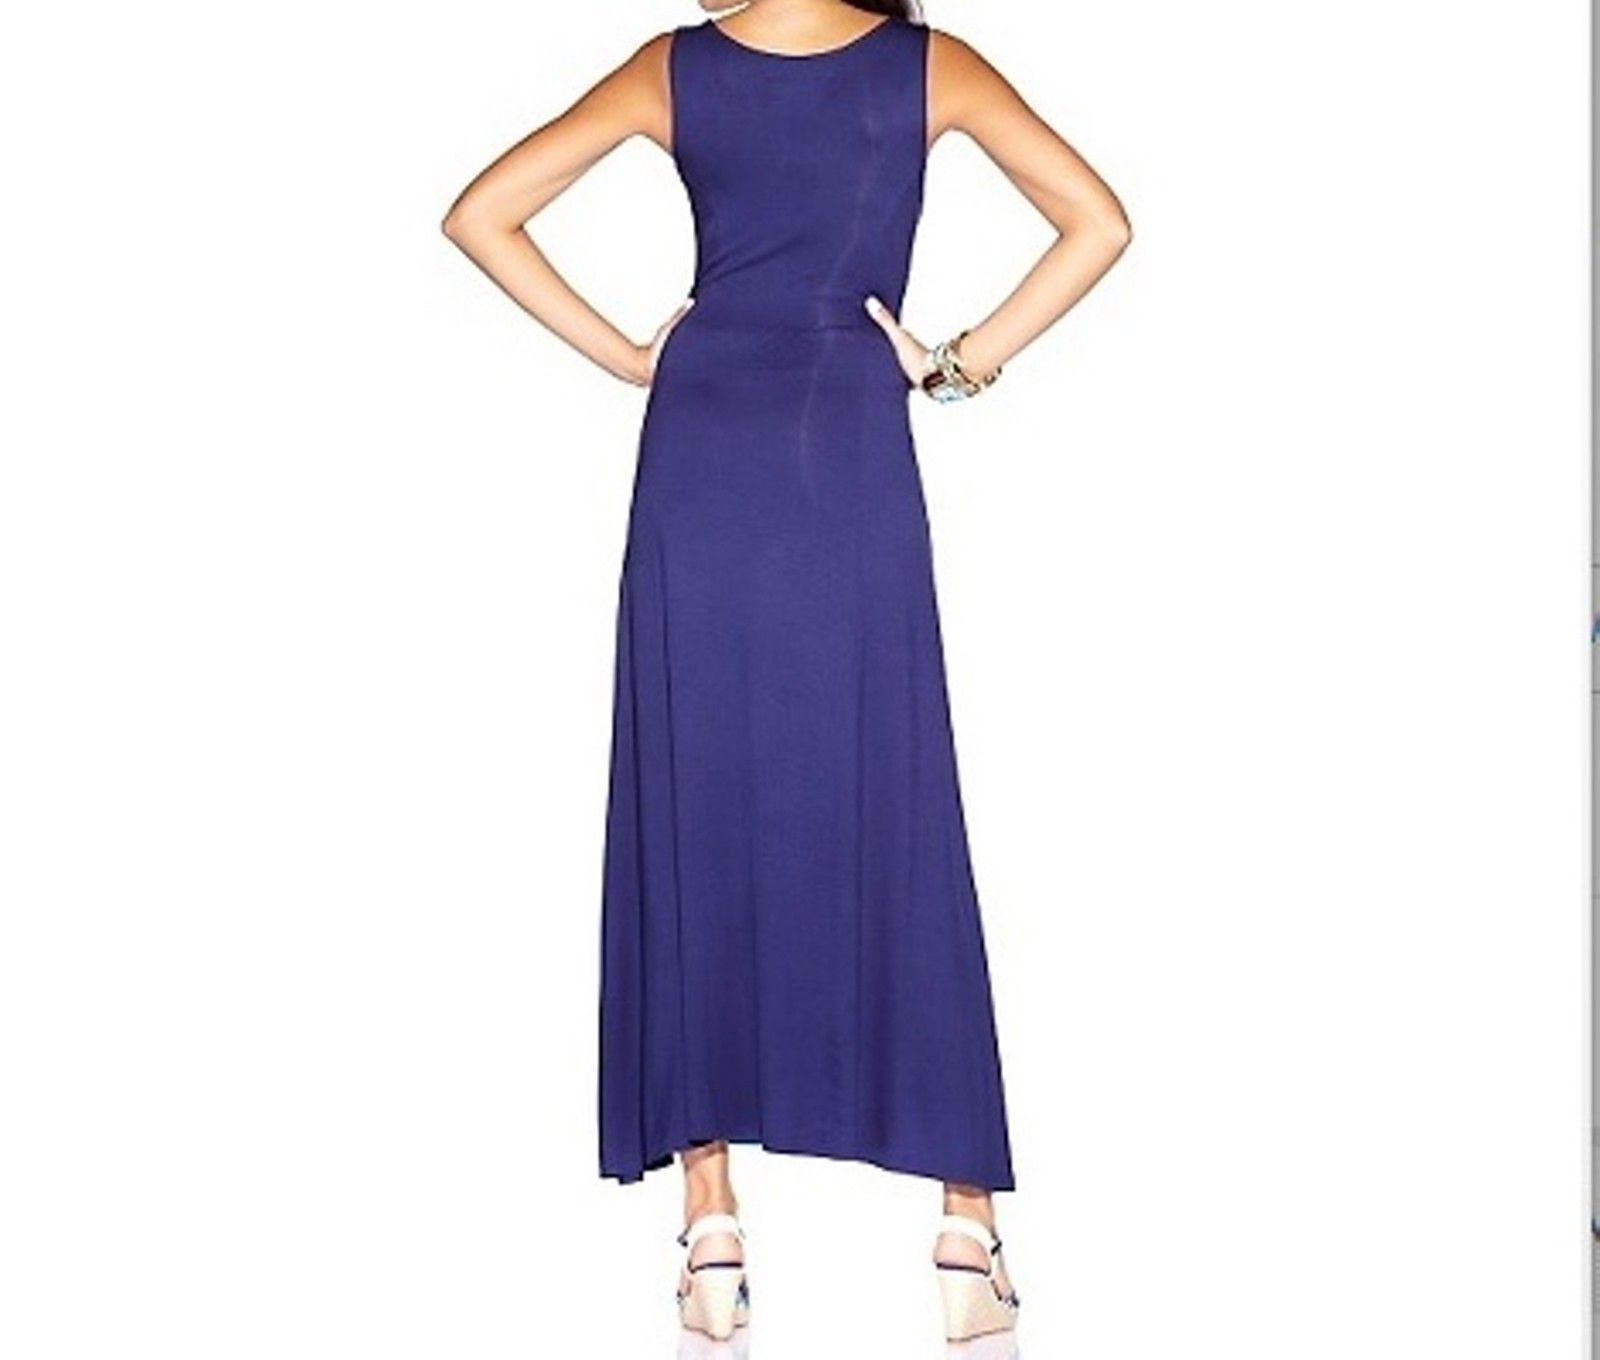 Women''s Cruise evening party day work office stretch knit tie maxi dress plus2X